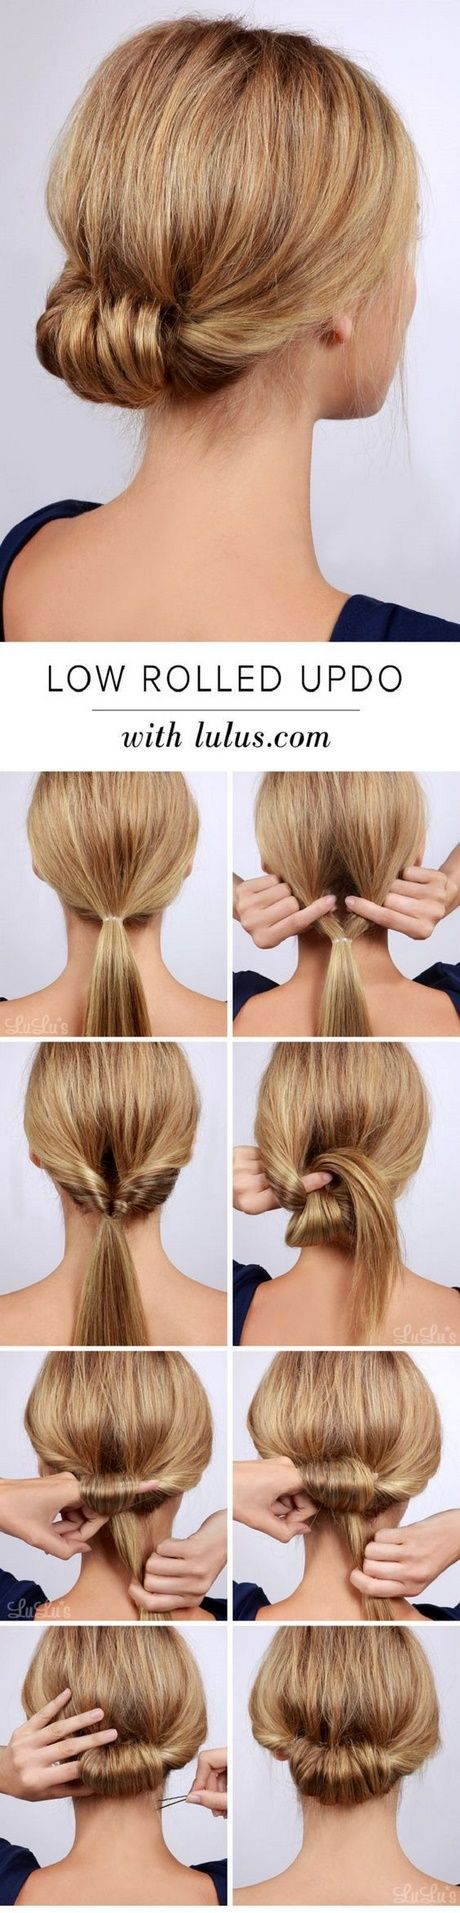 Long hair updos for work